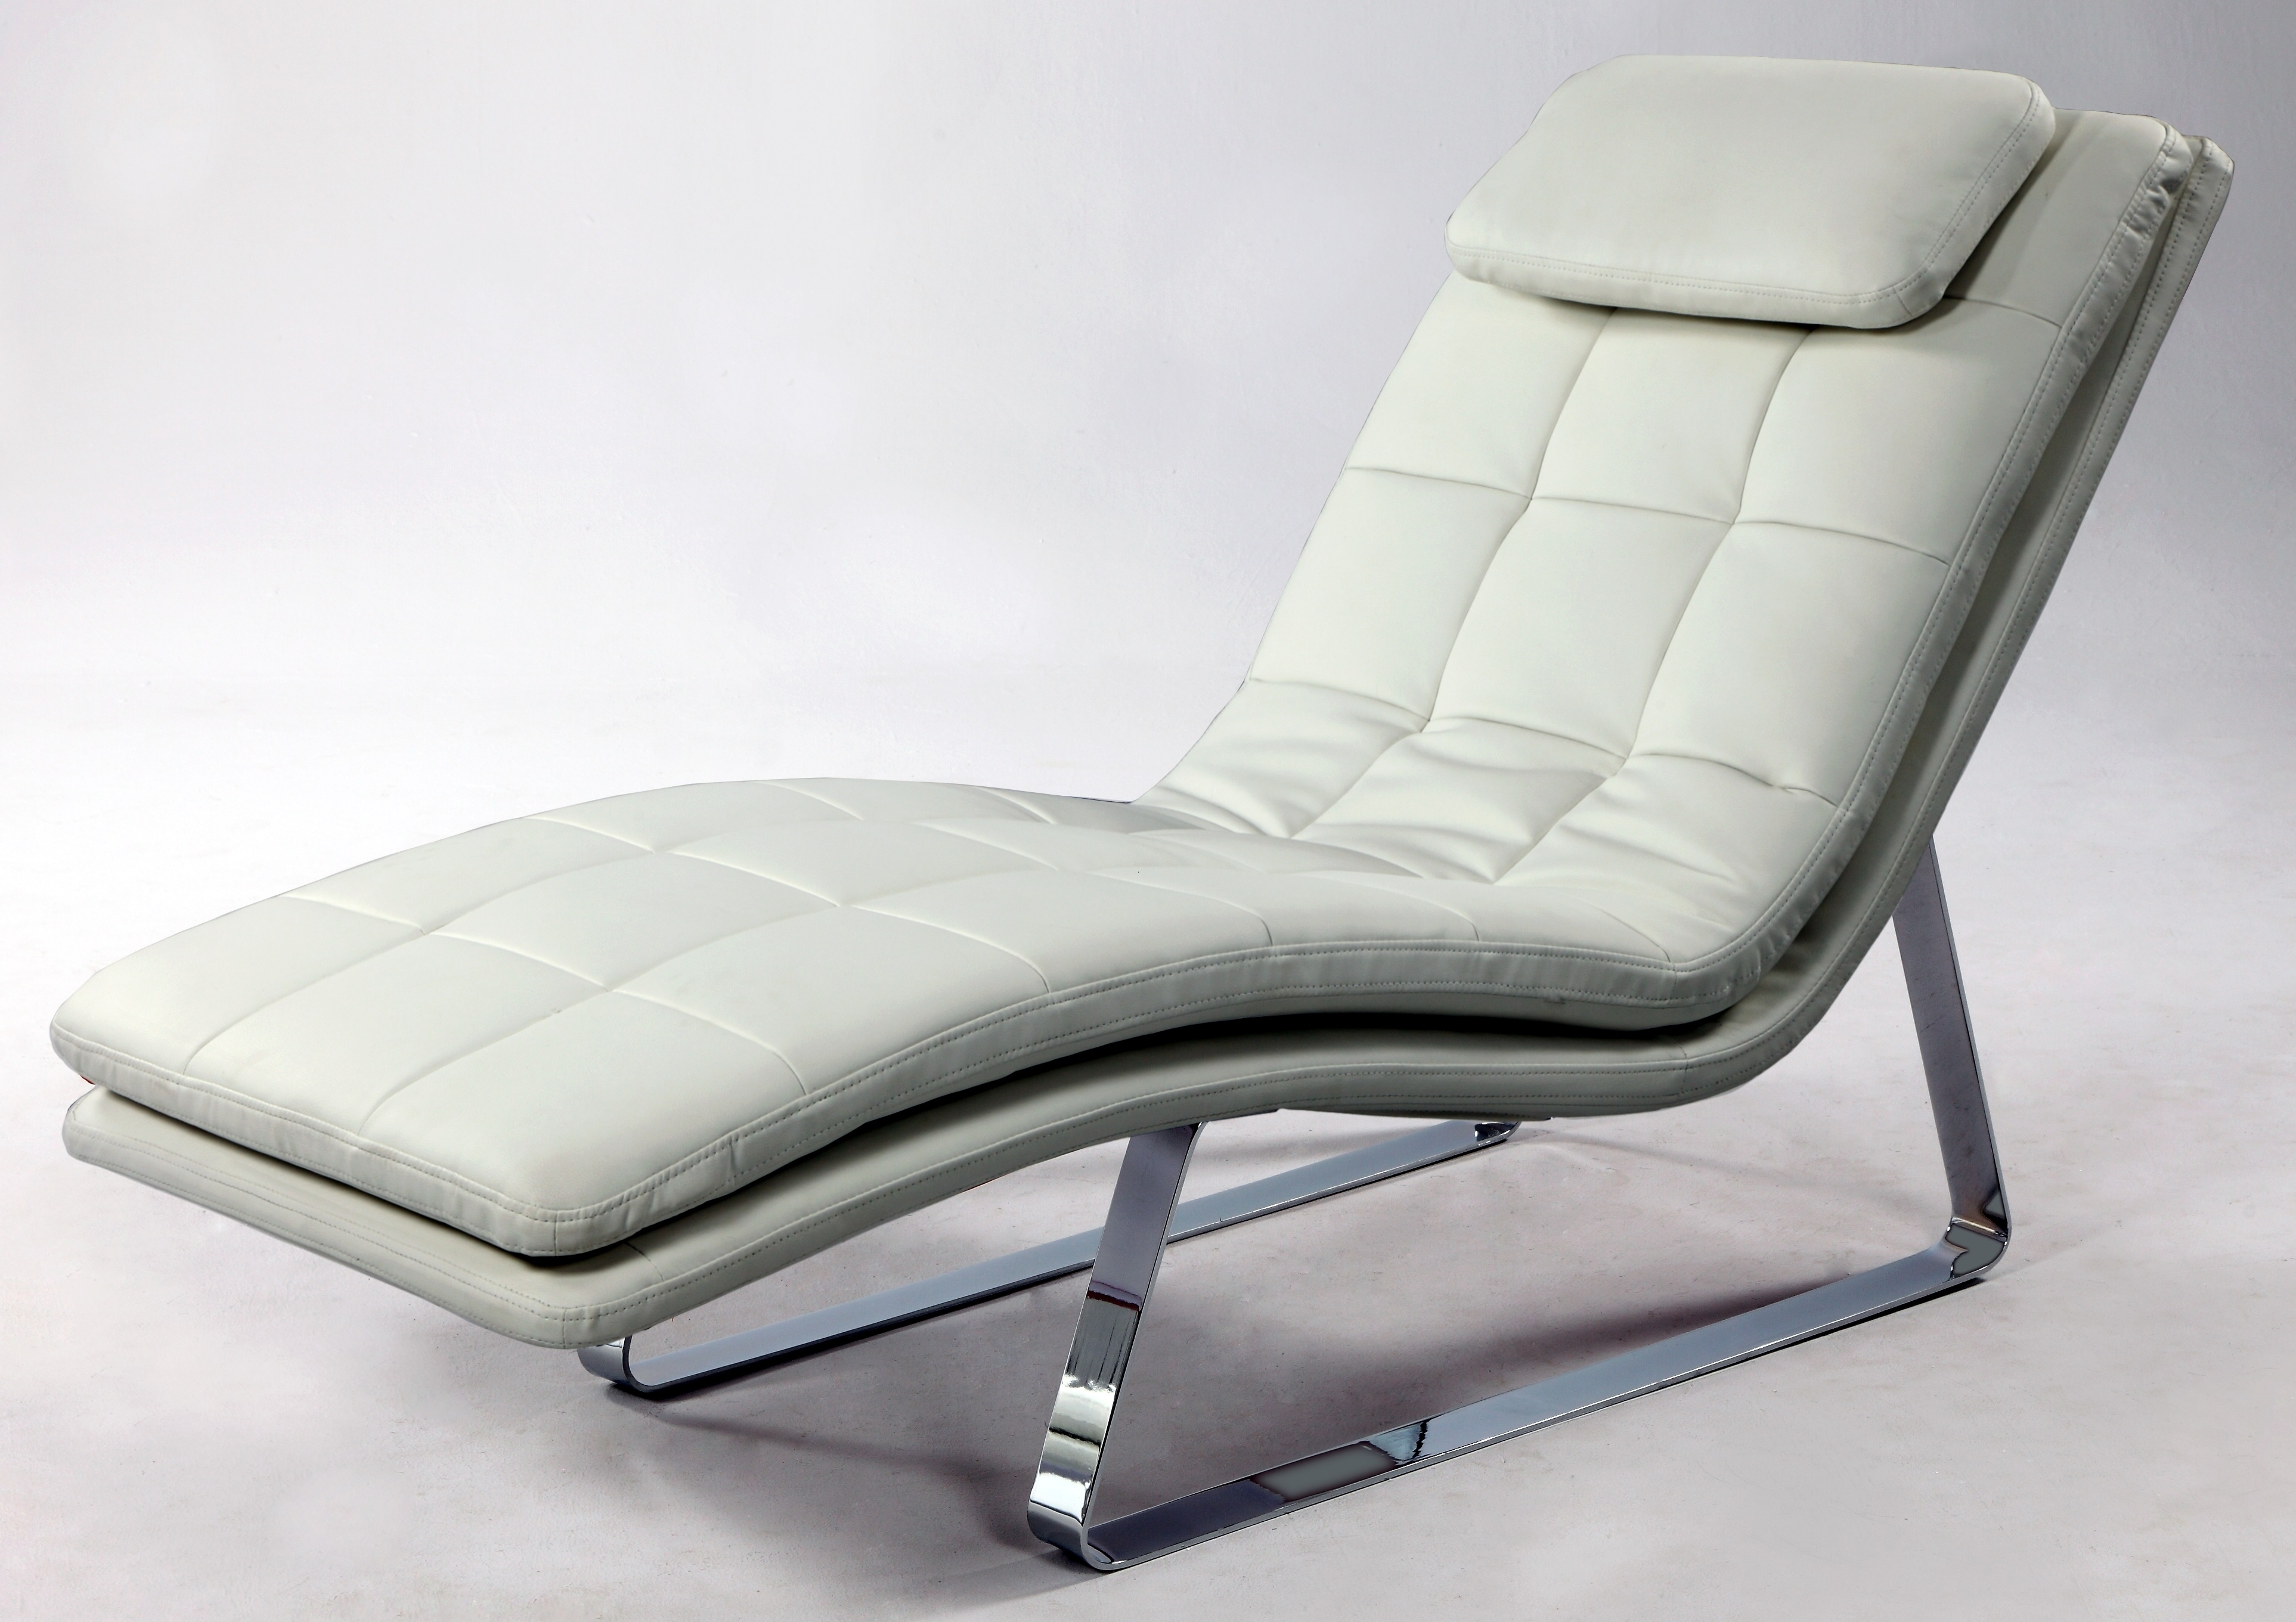 Full Bonded Leather Tufted Chaise Lounge With Chrome Legs New York Regarding Most Recently Released White Leather Chaise Lounges (View 5 of 15)